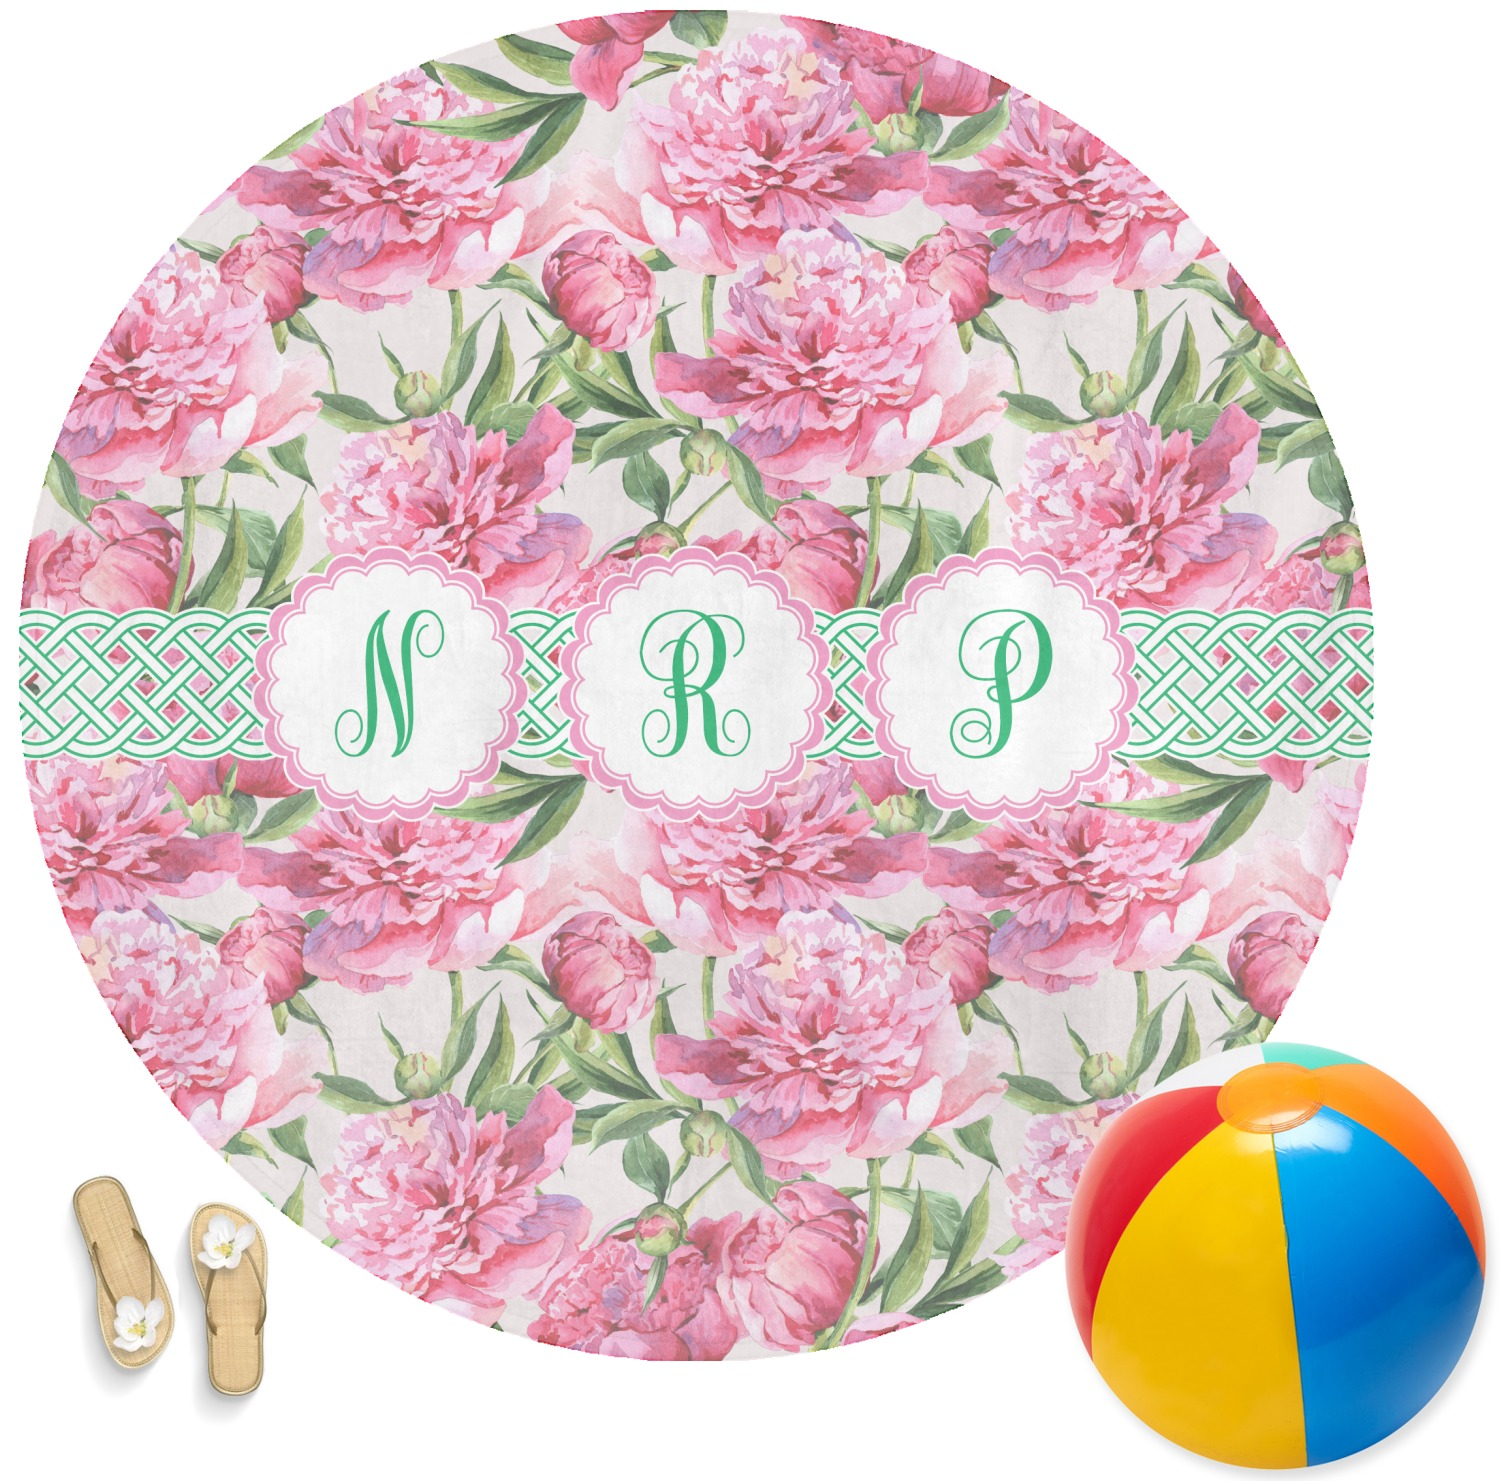 Watercolor Peonies Round Beach Towel Personalized